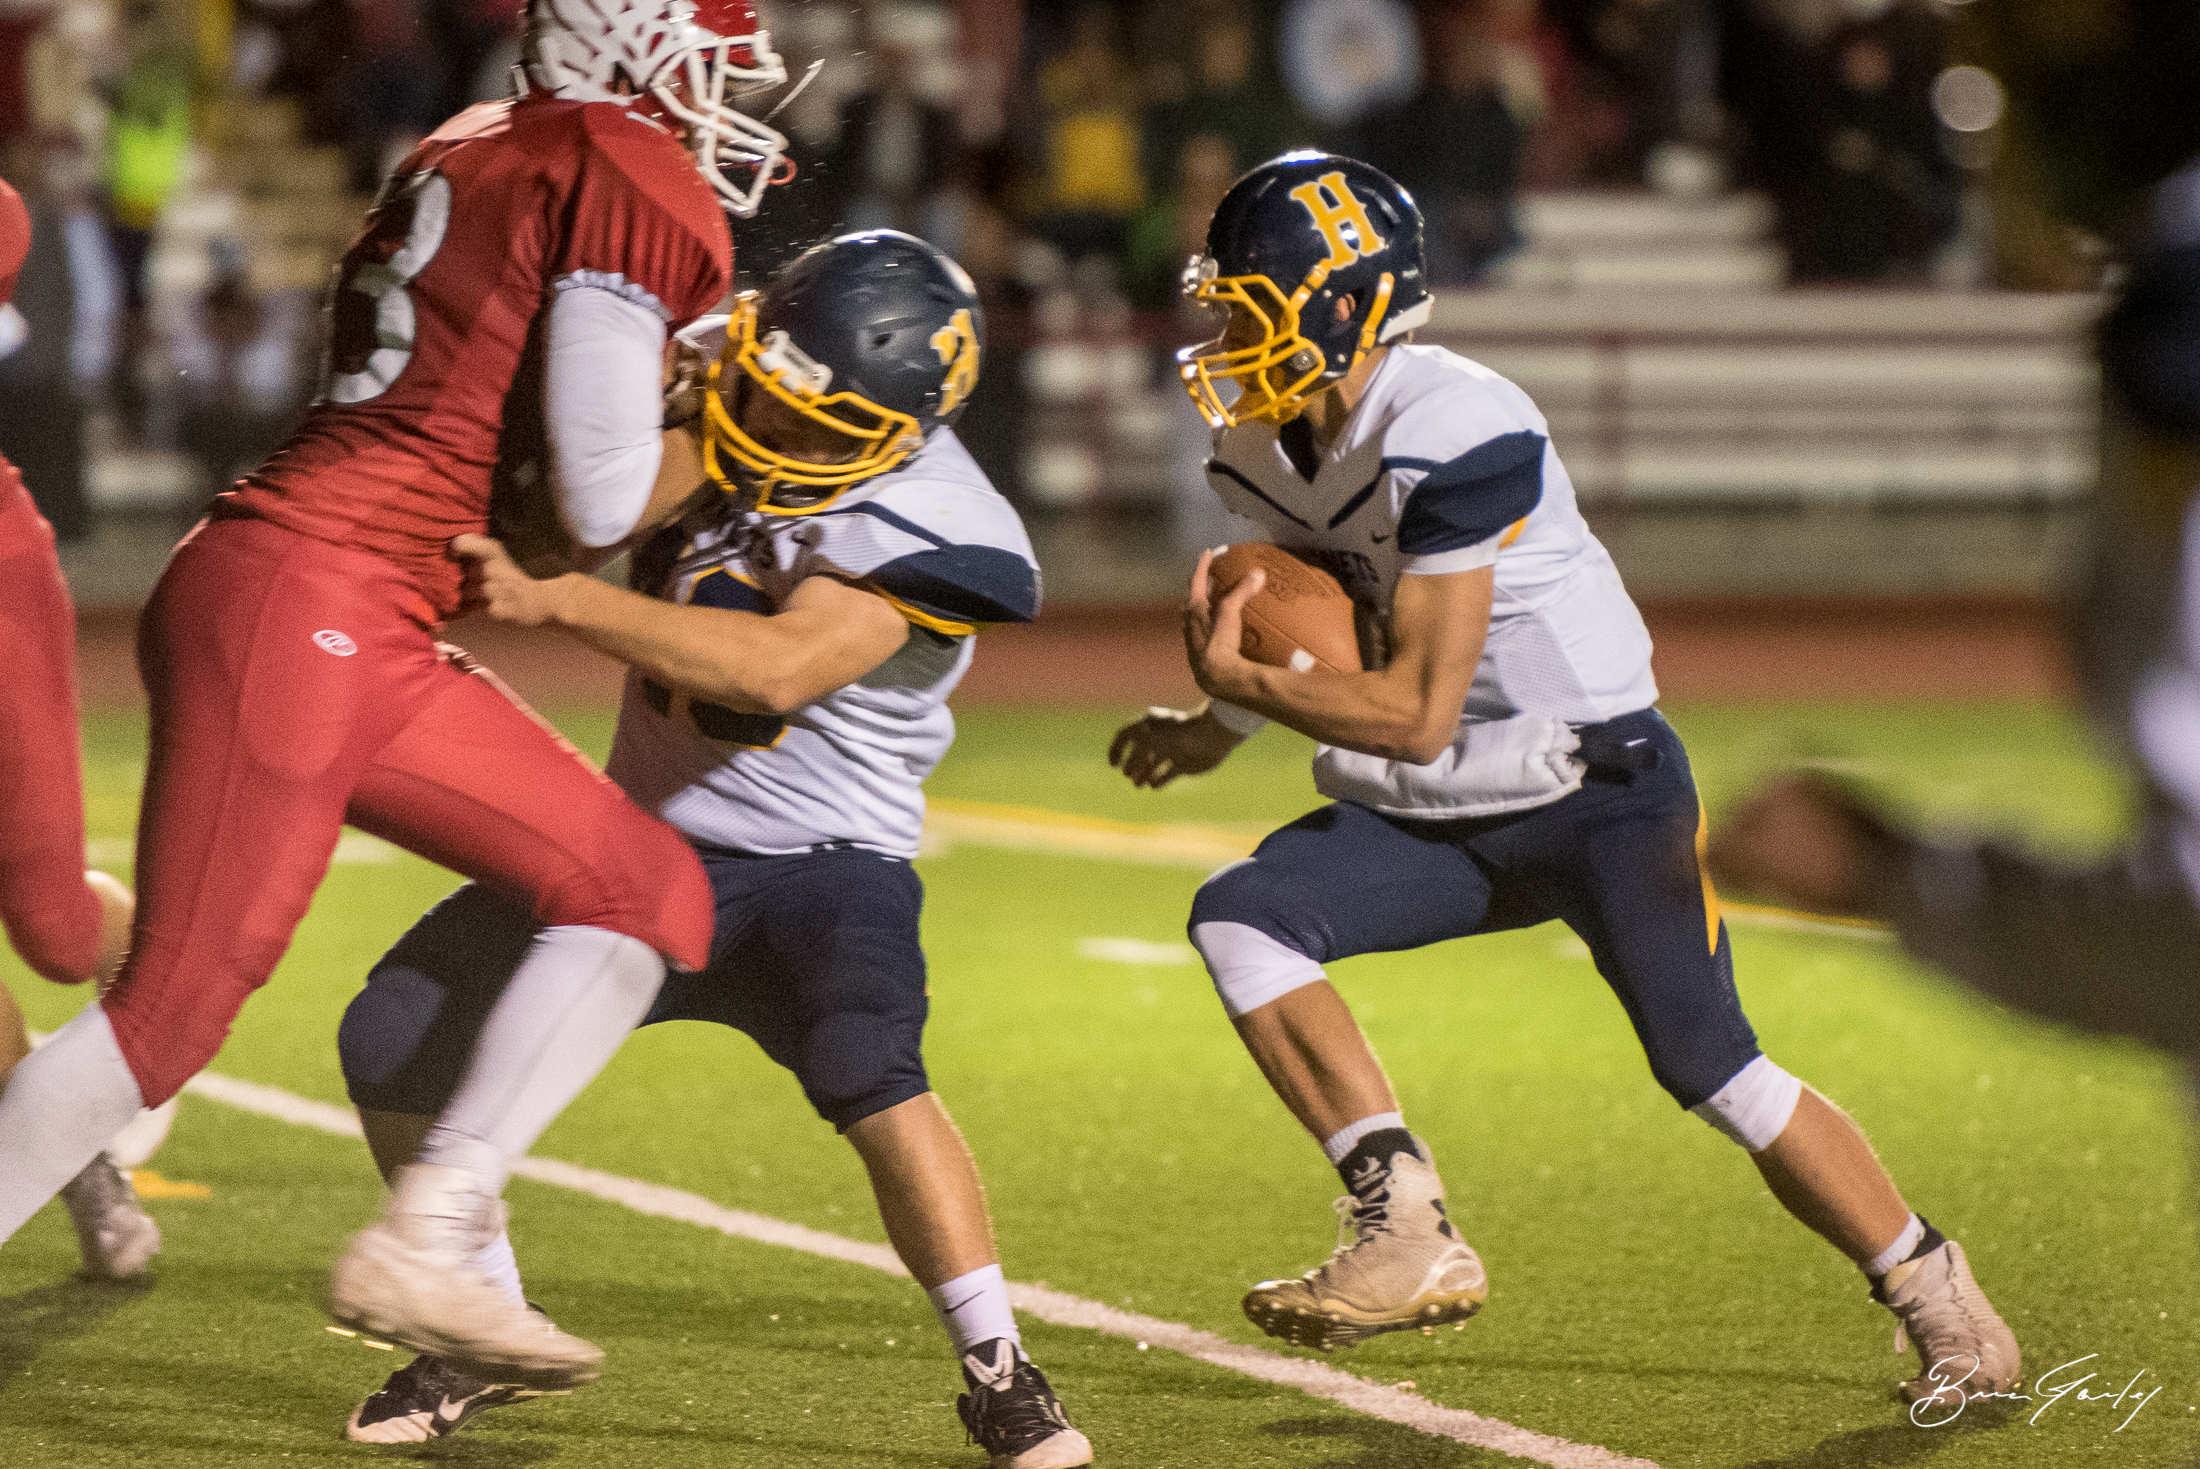 Henley QB #7, Kyle Hadwick holds onto the ball after the option play.